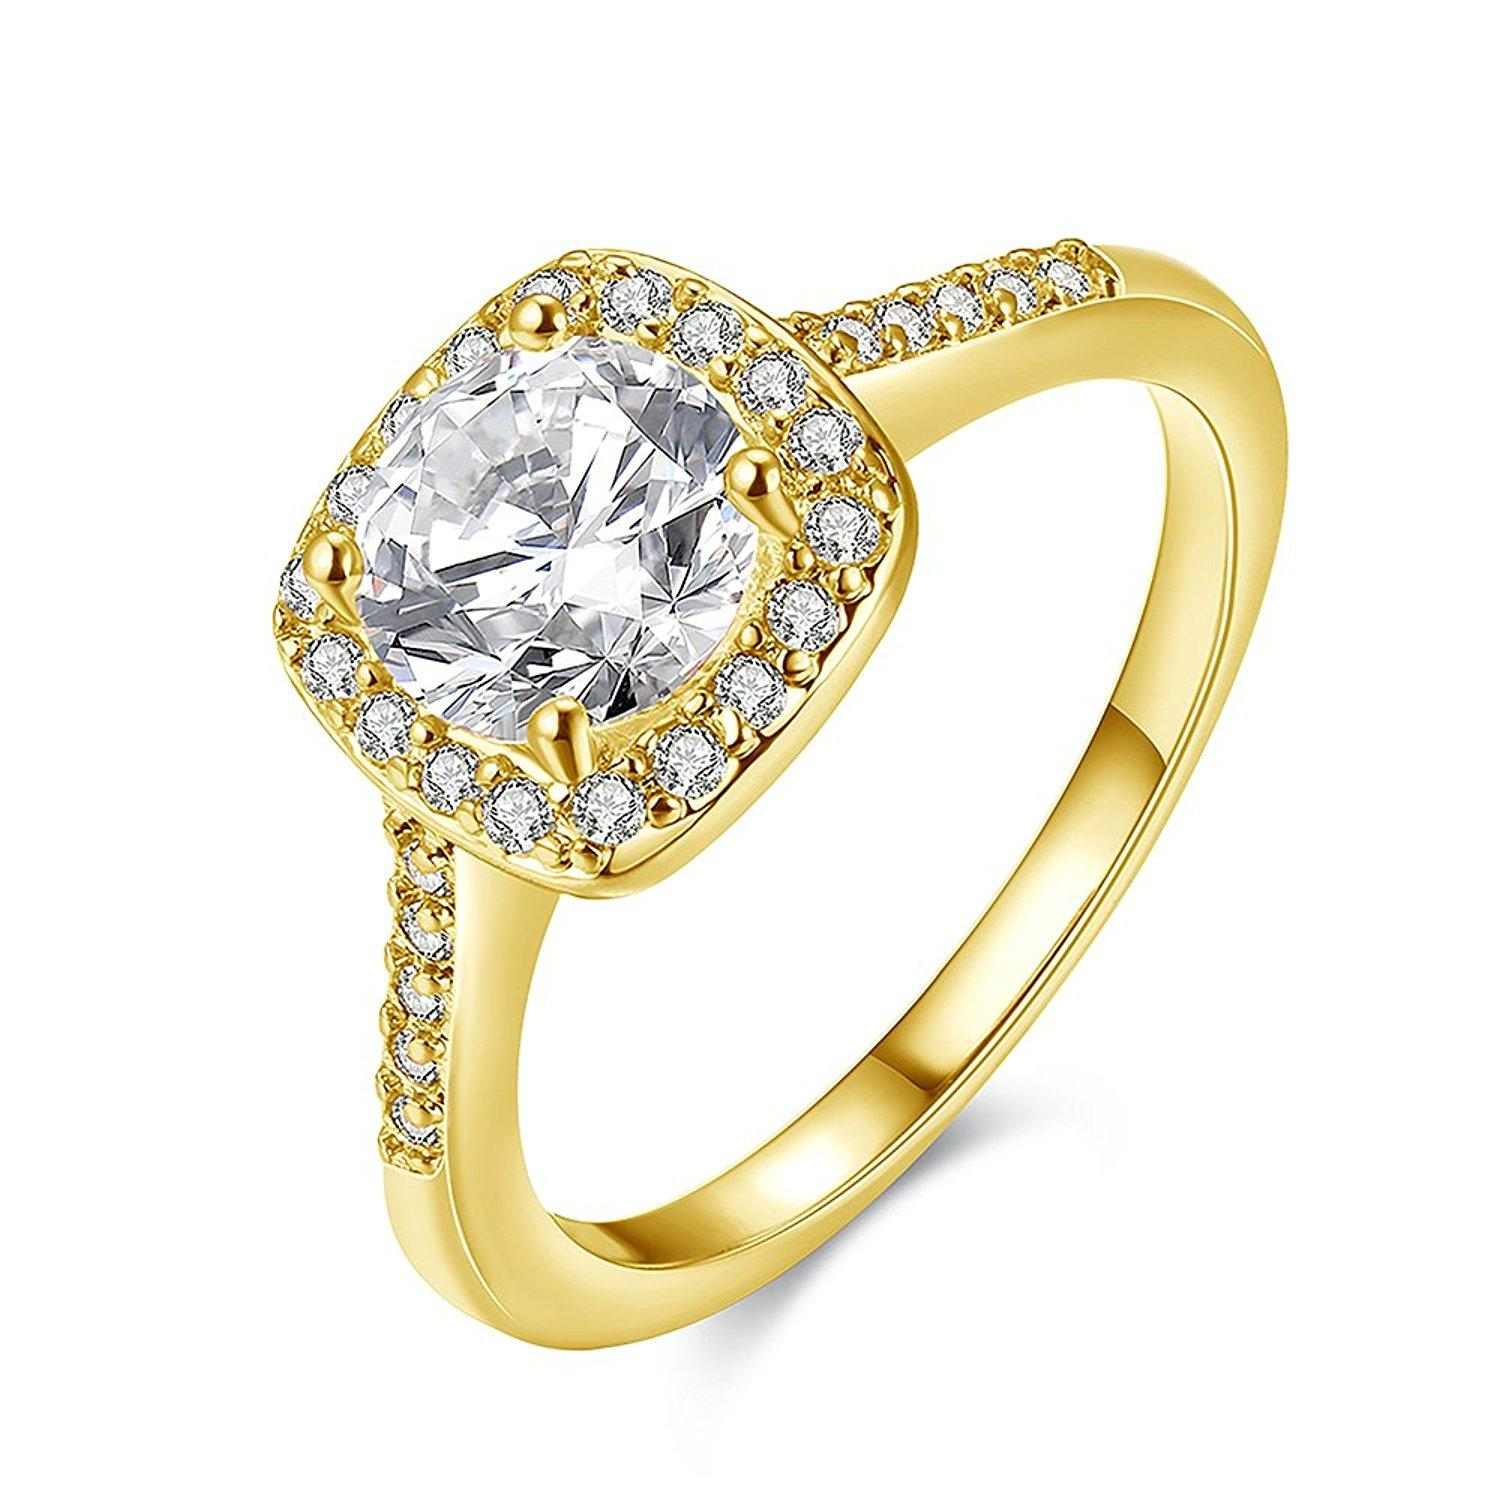 buy on gold moissanite shop royal livemaster metal golden online in ring item rings handmade yellow